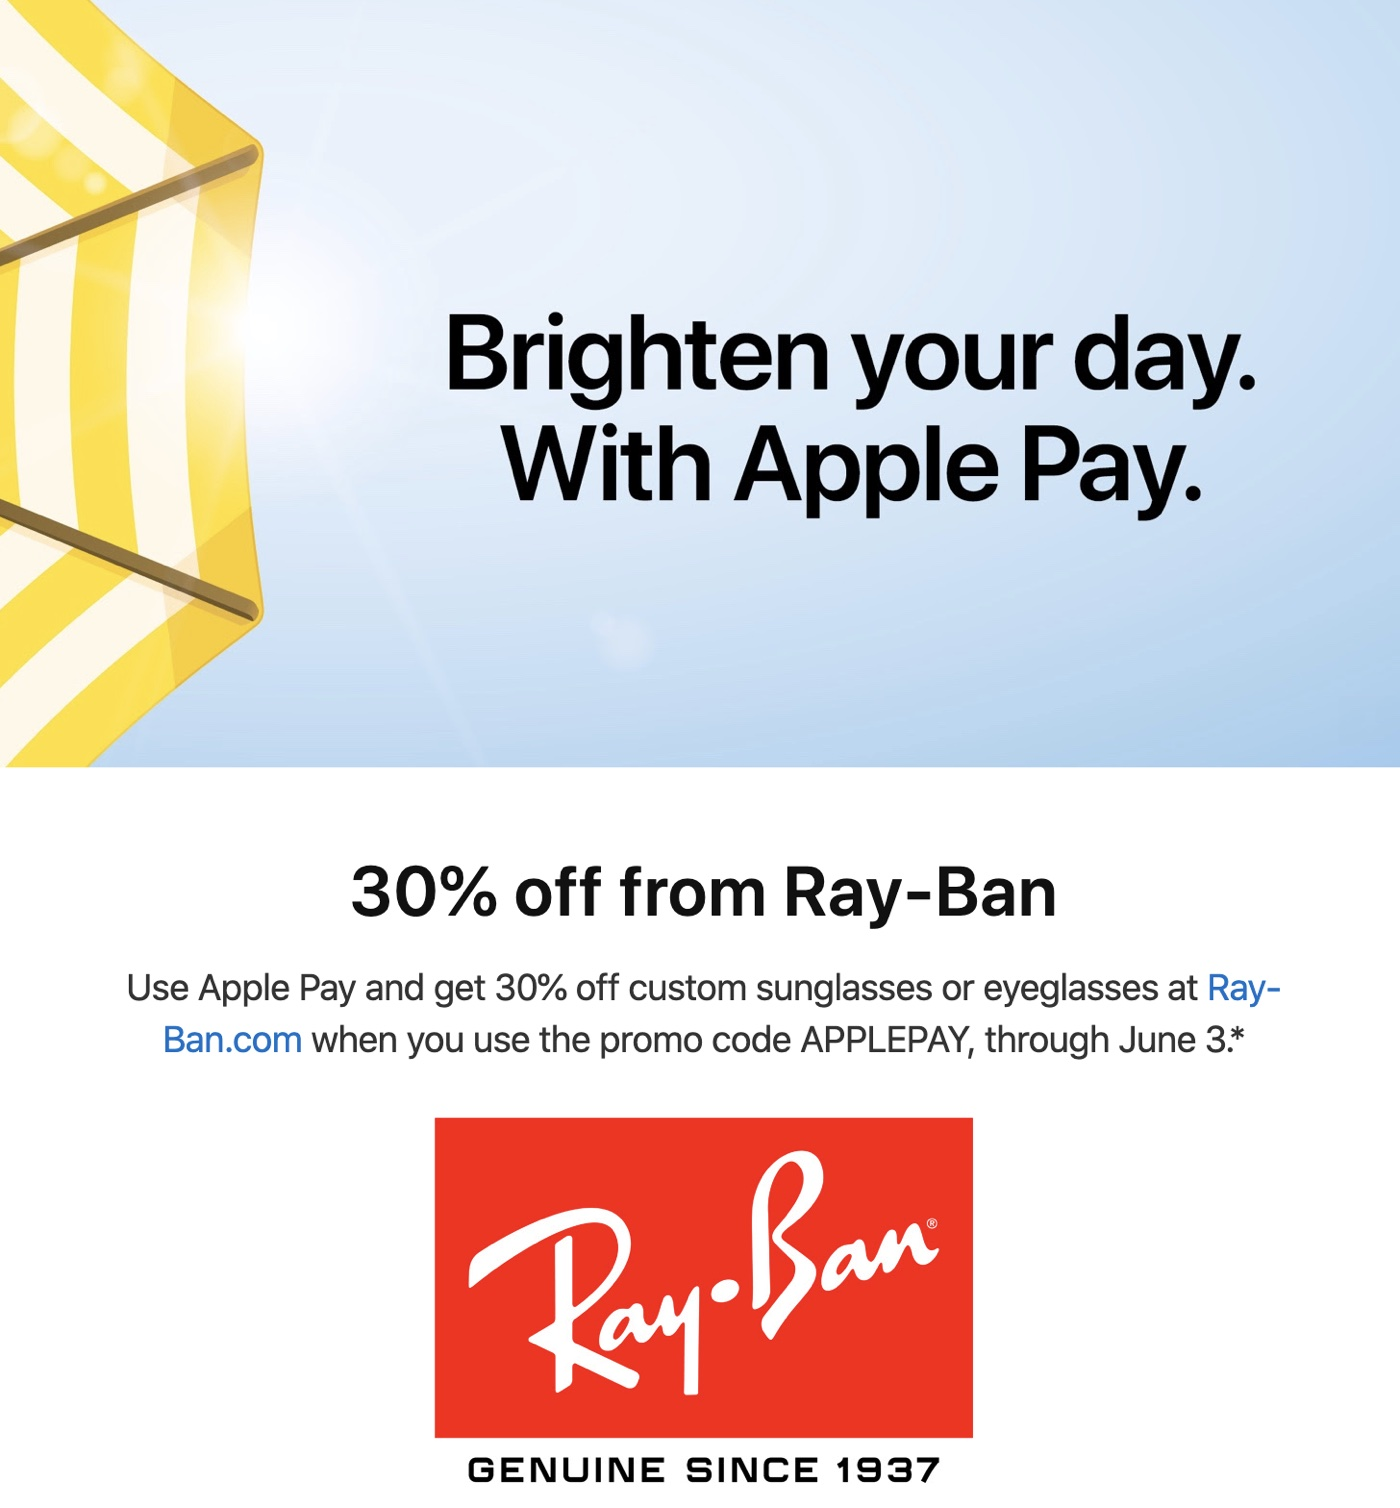 photo of Apple Pay Promo Offers 30% Discount From Ray-Ban image